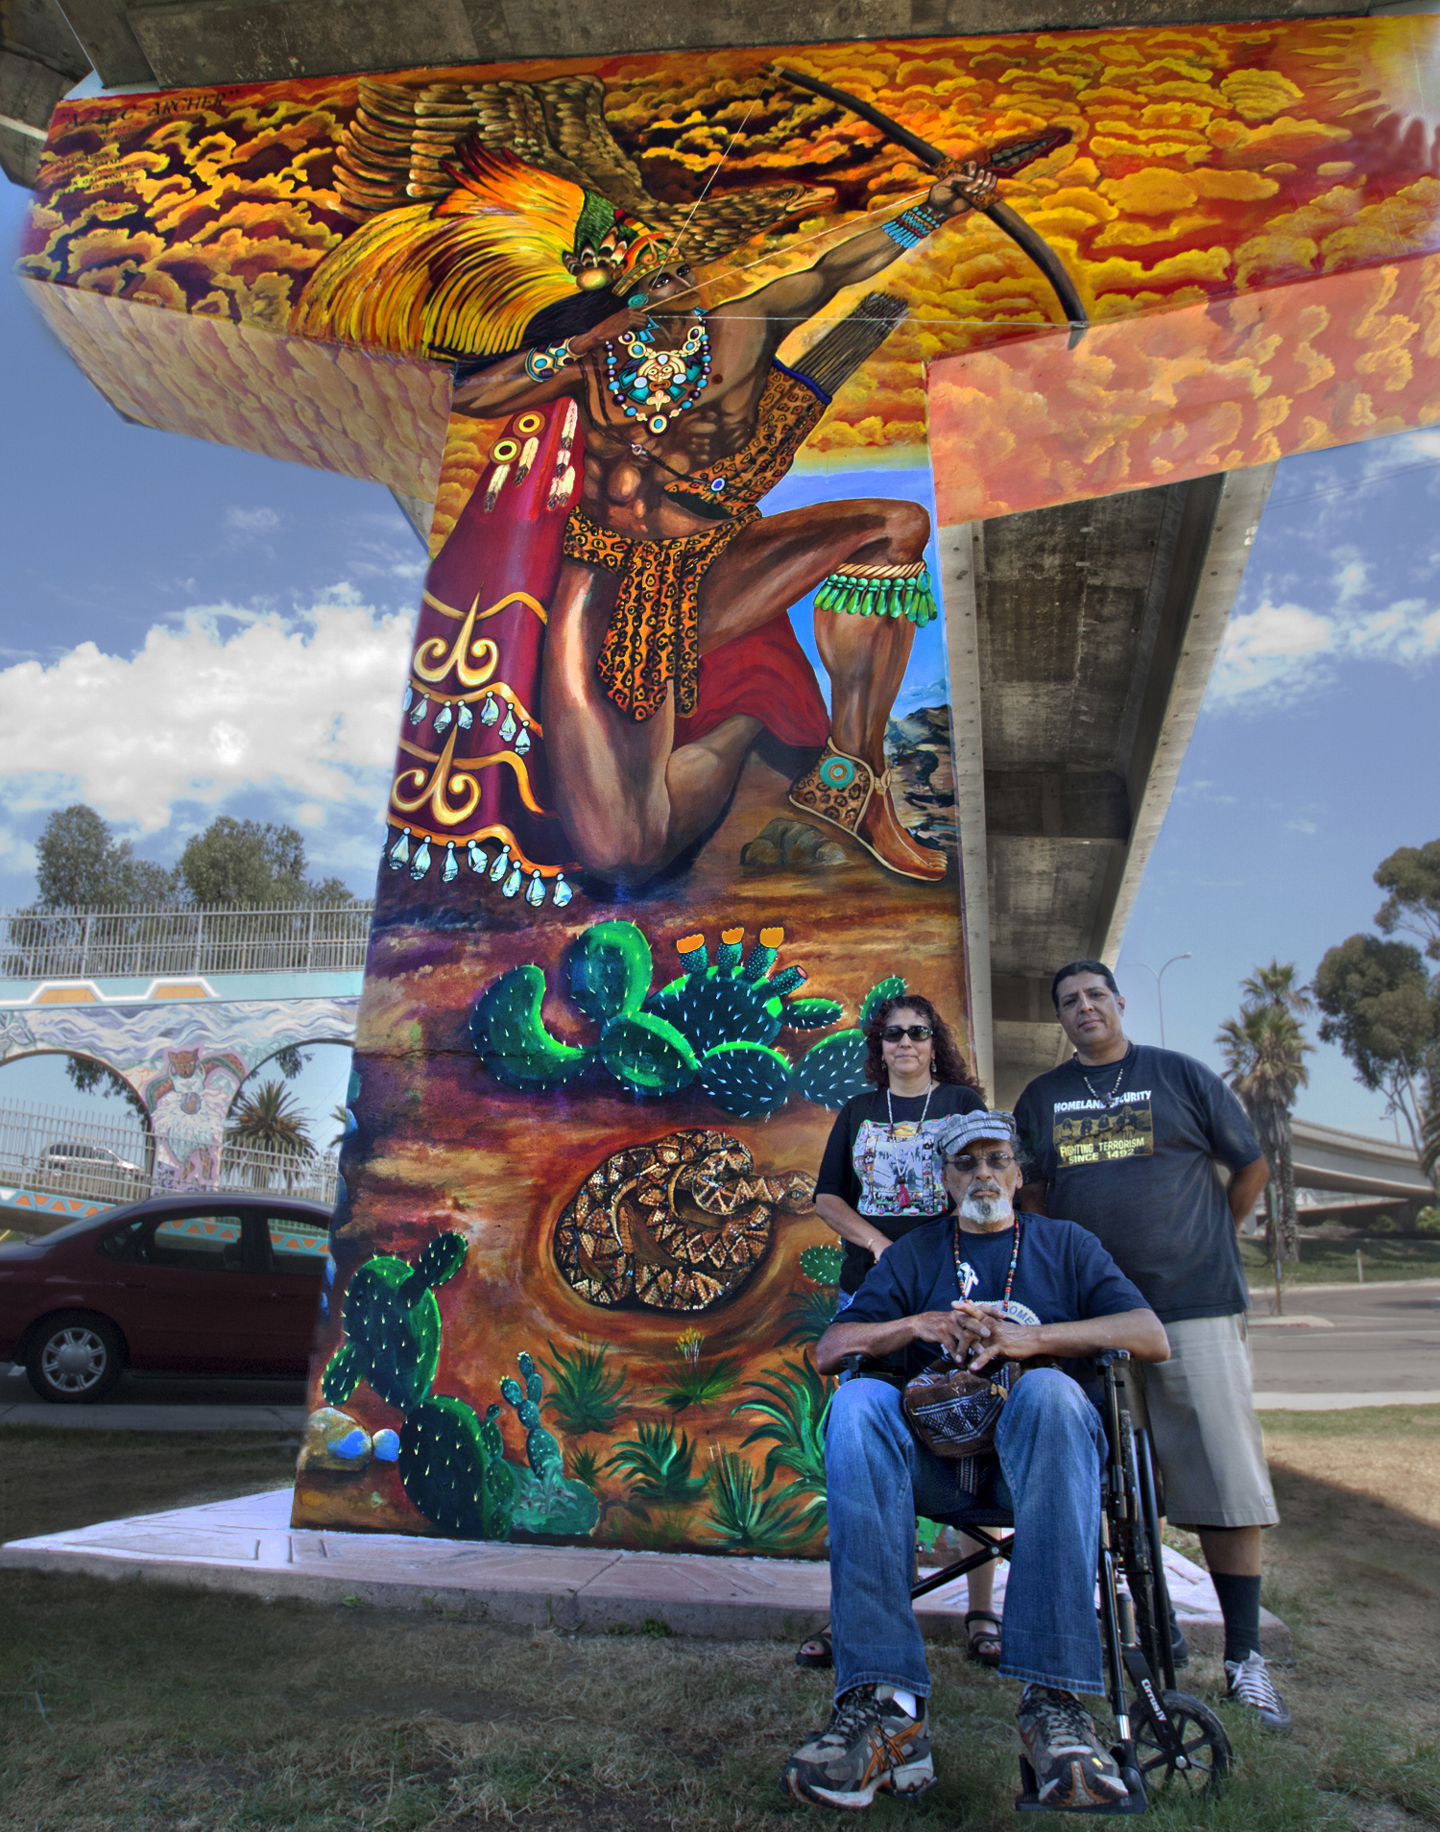 Chicano park artists recapture the fiery glory of vidal m for Chicano mural art